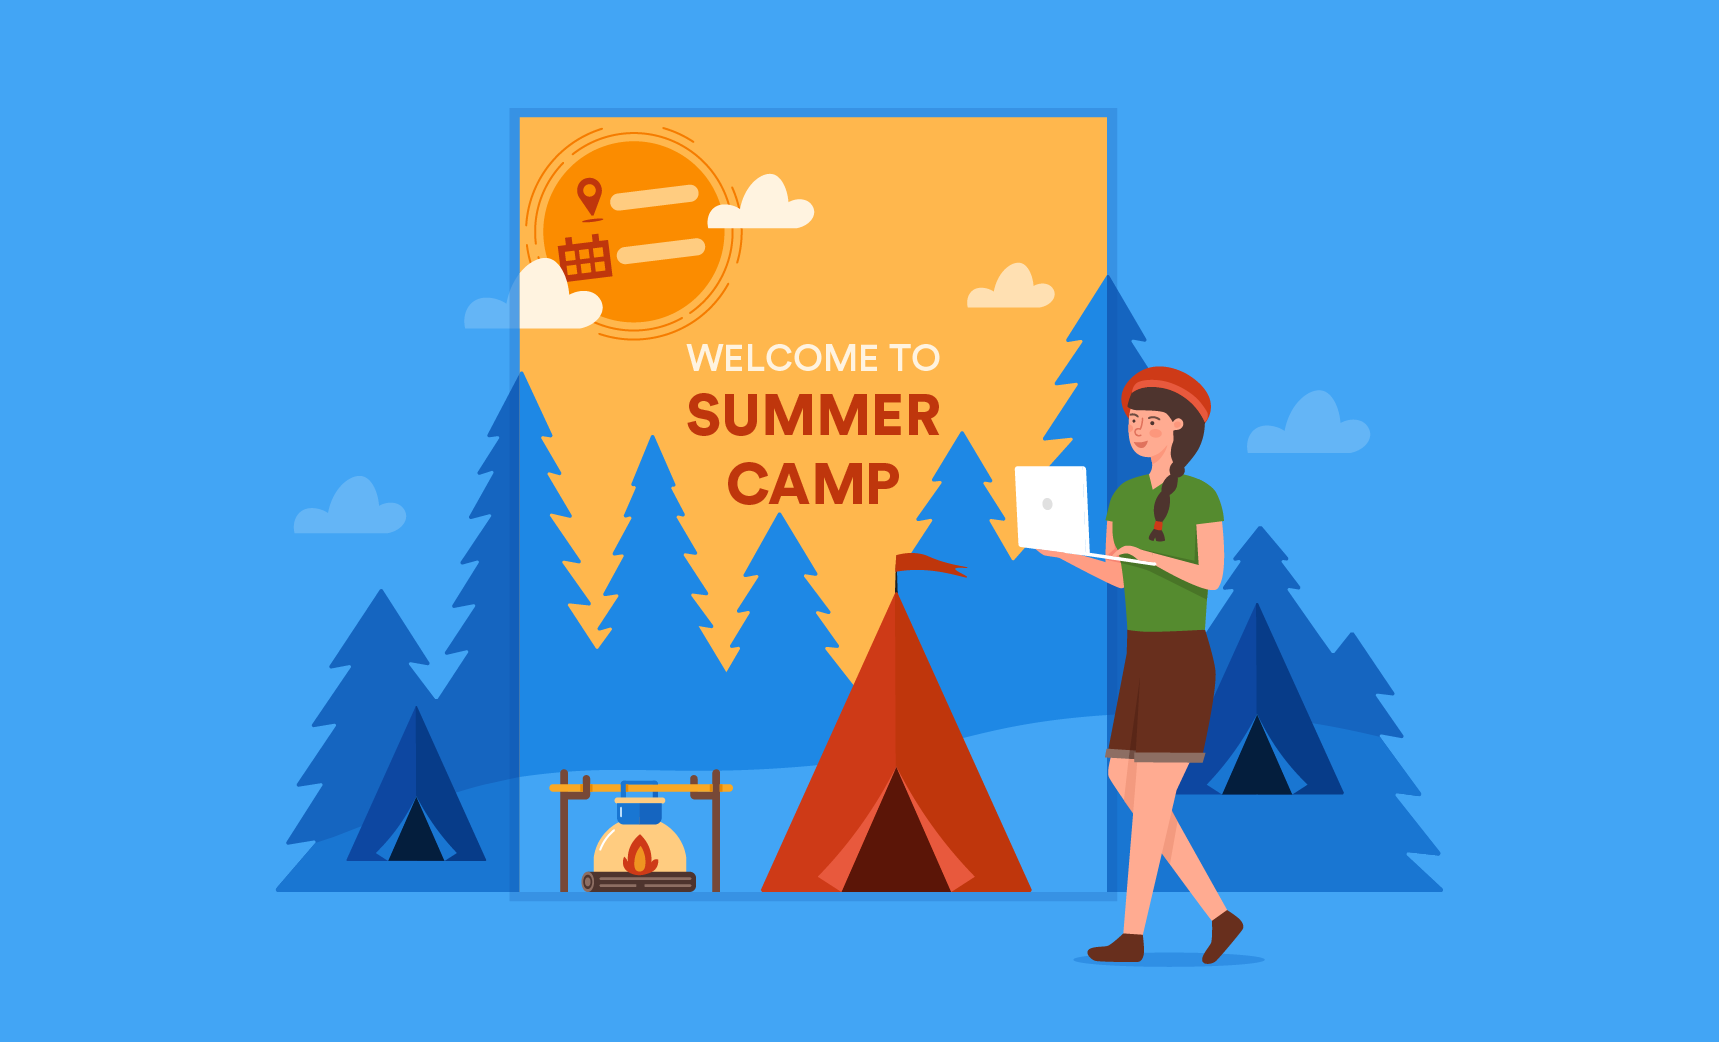 Summer Camp Flyer Template Word from www.jotform.com